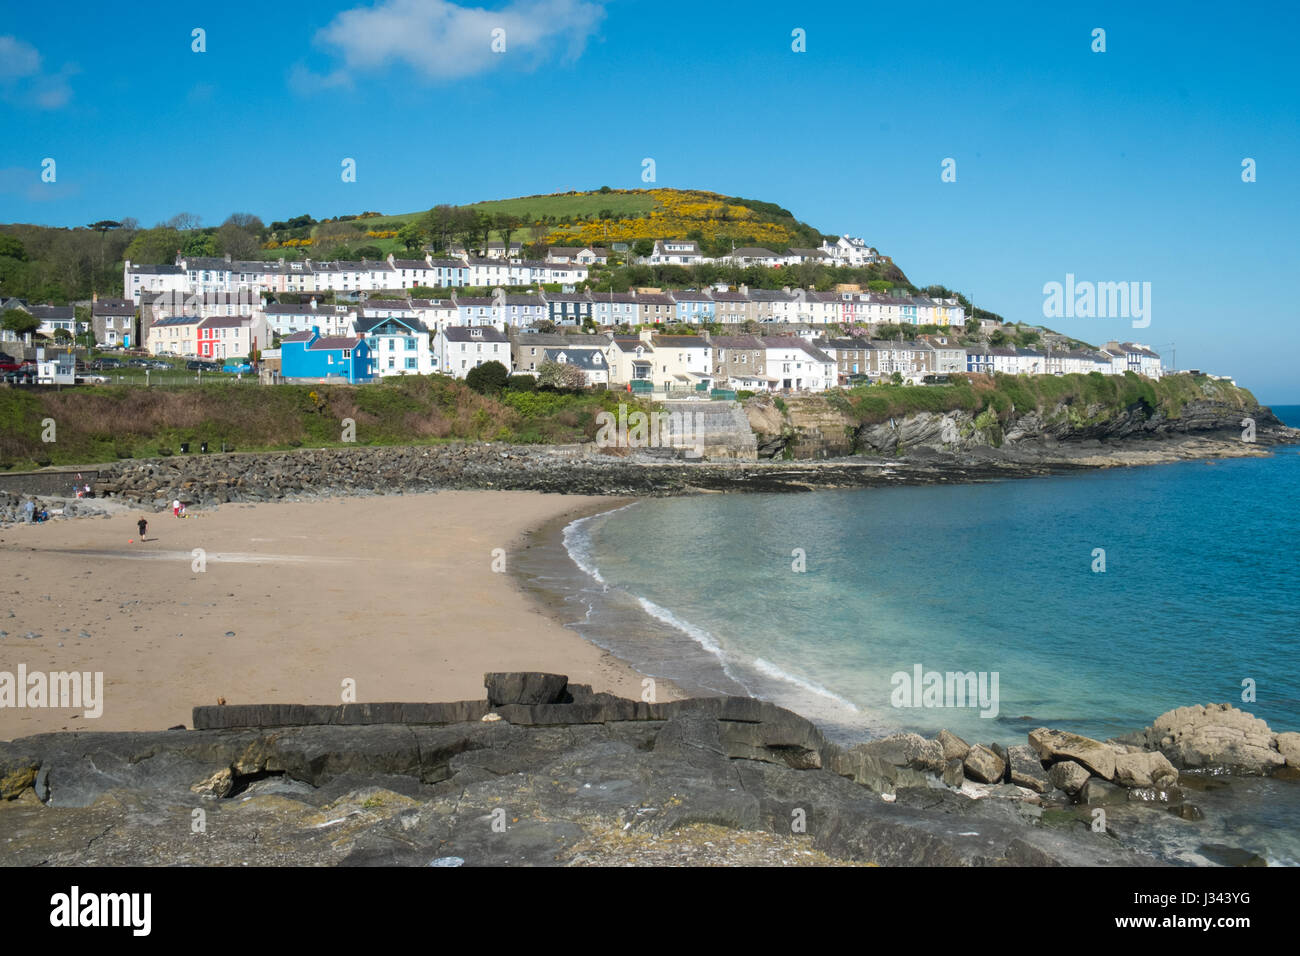 Harbour,beach,tourism,tourist,fishing,boat,trips,dolphin,watching,shop,New Quay,harbour,Cardigan Bay,Ceredigion,coast,West - Stock Image